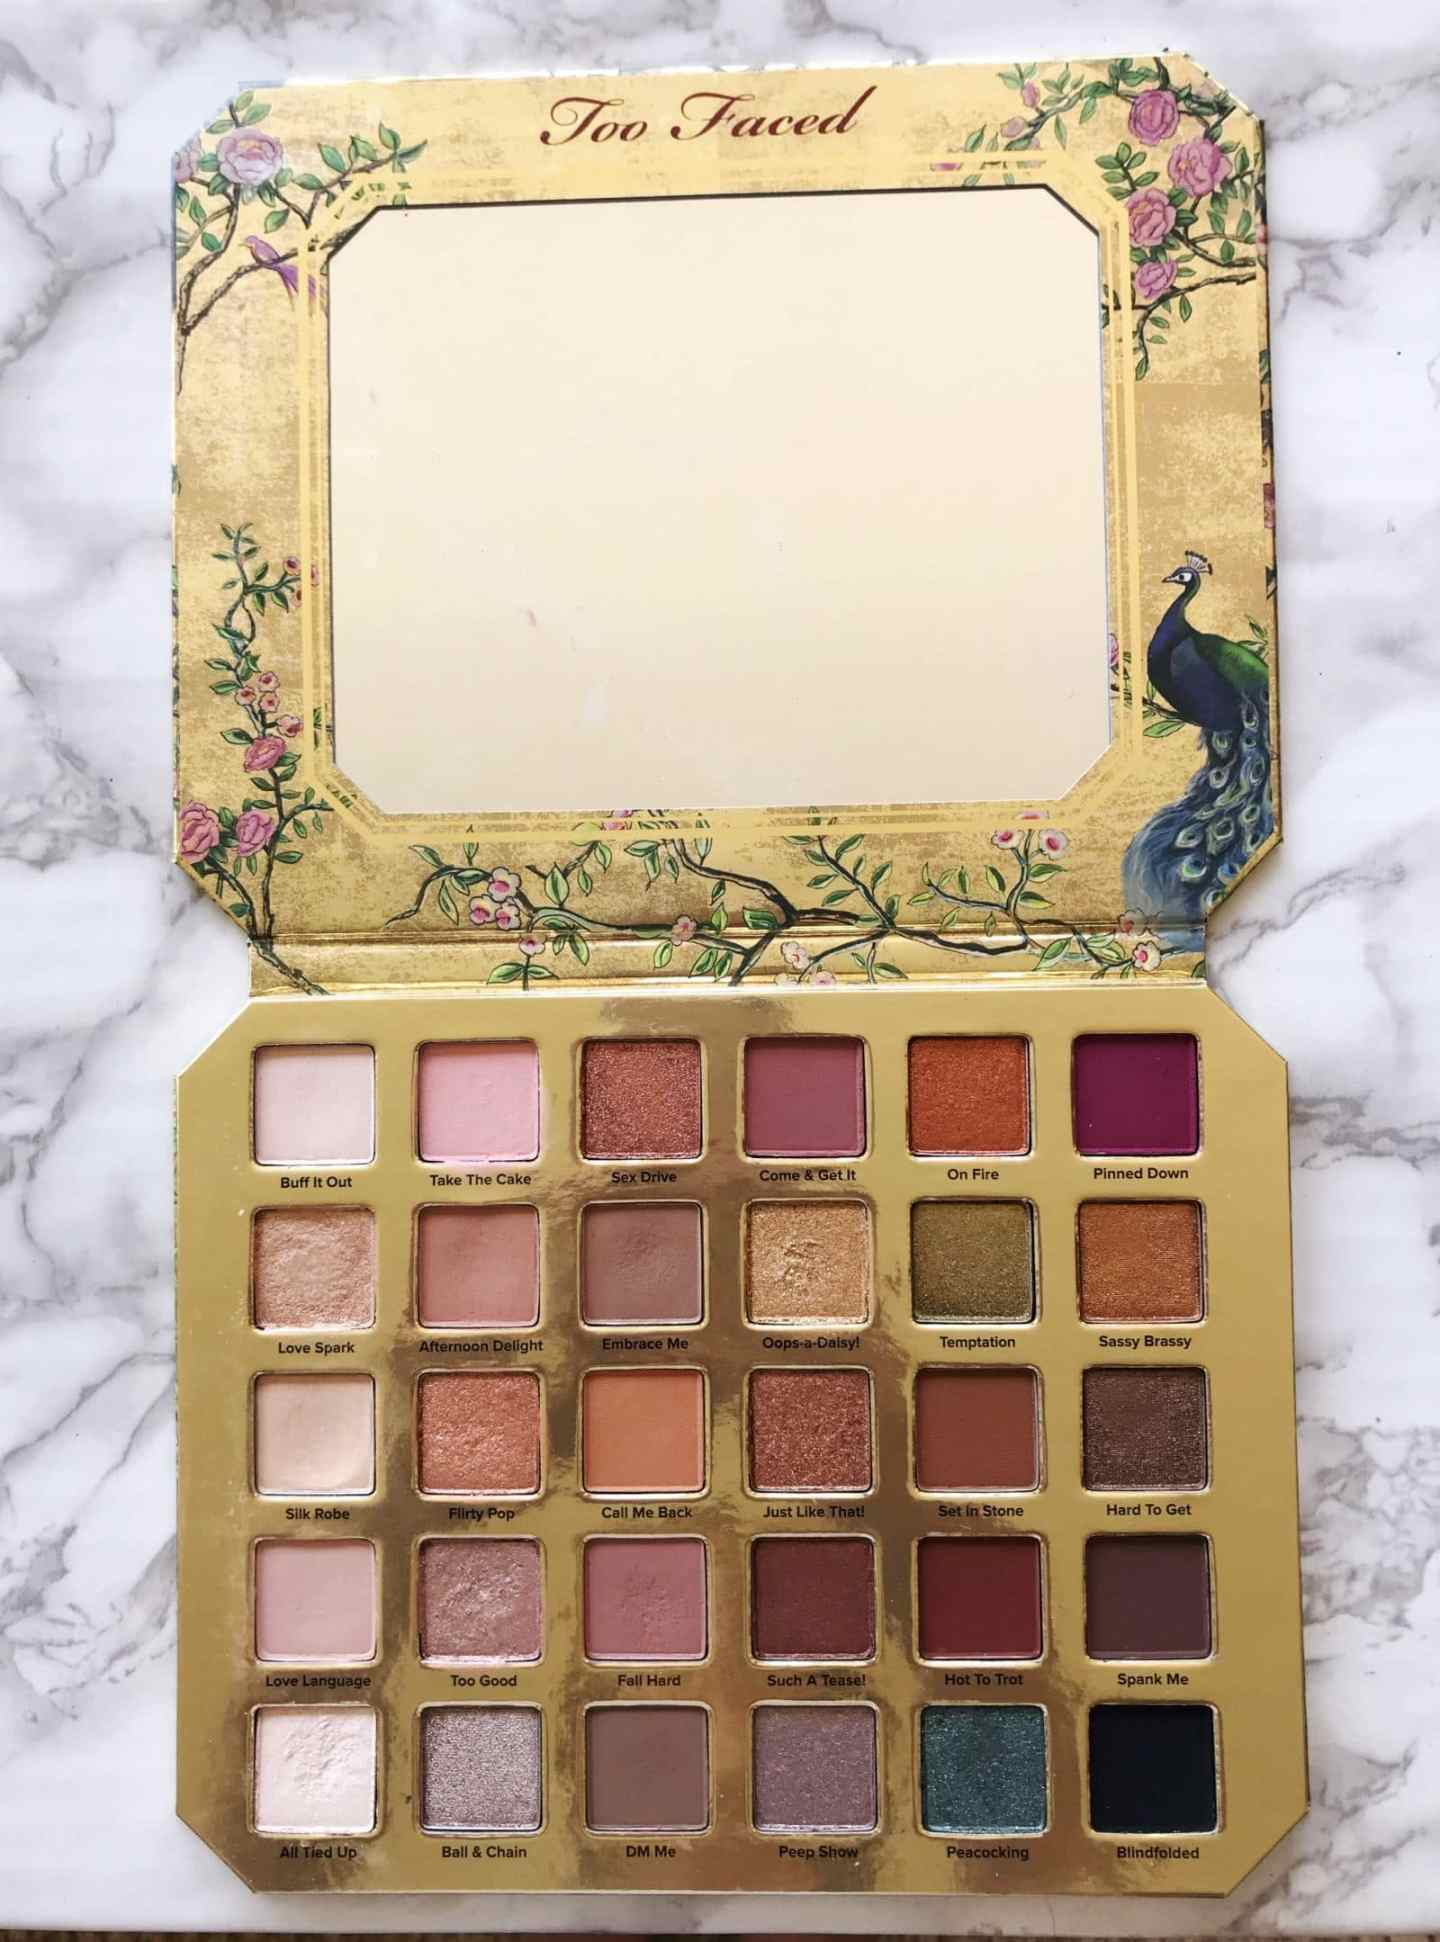 Too Faced Natural Lust Palette. A review for mature eyes.